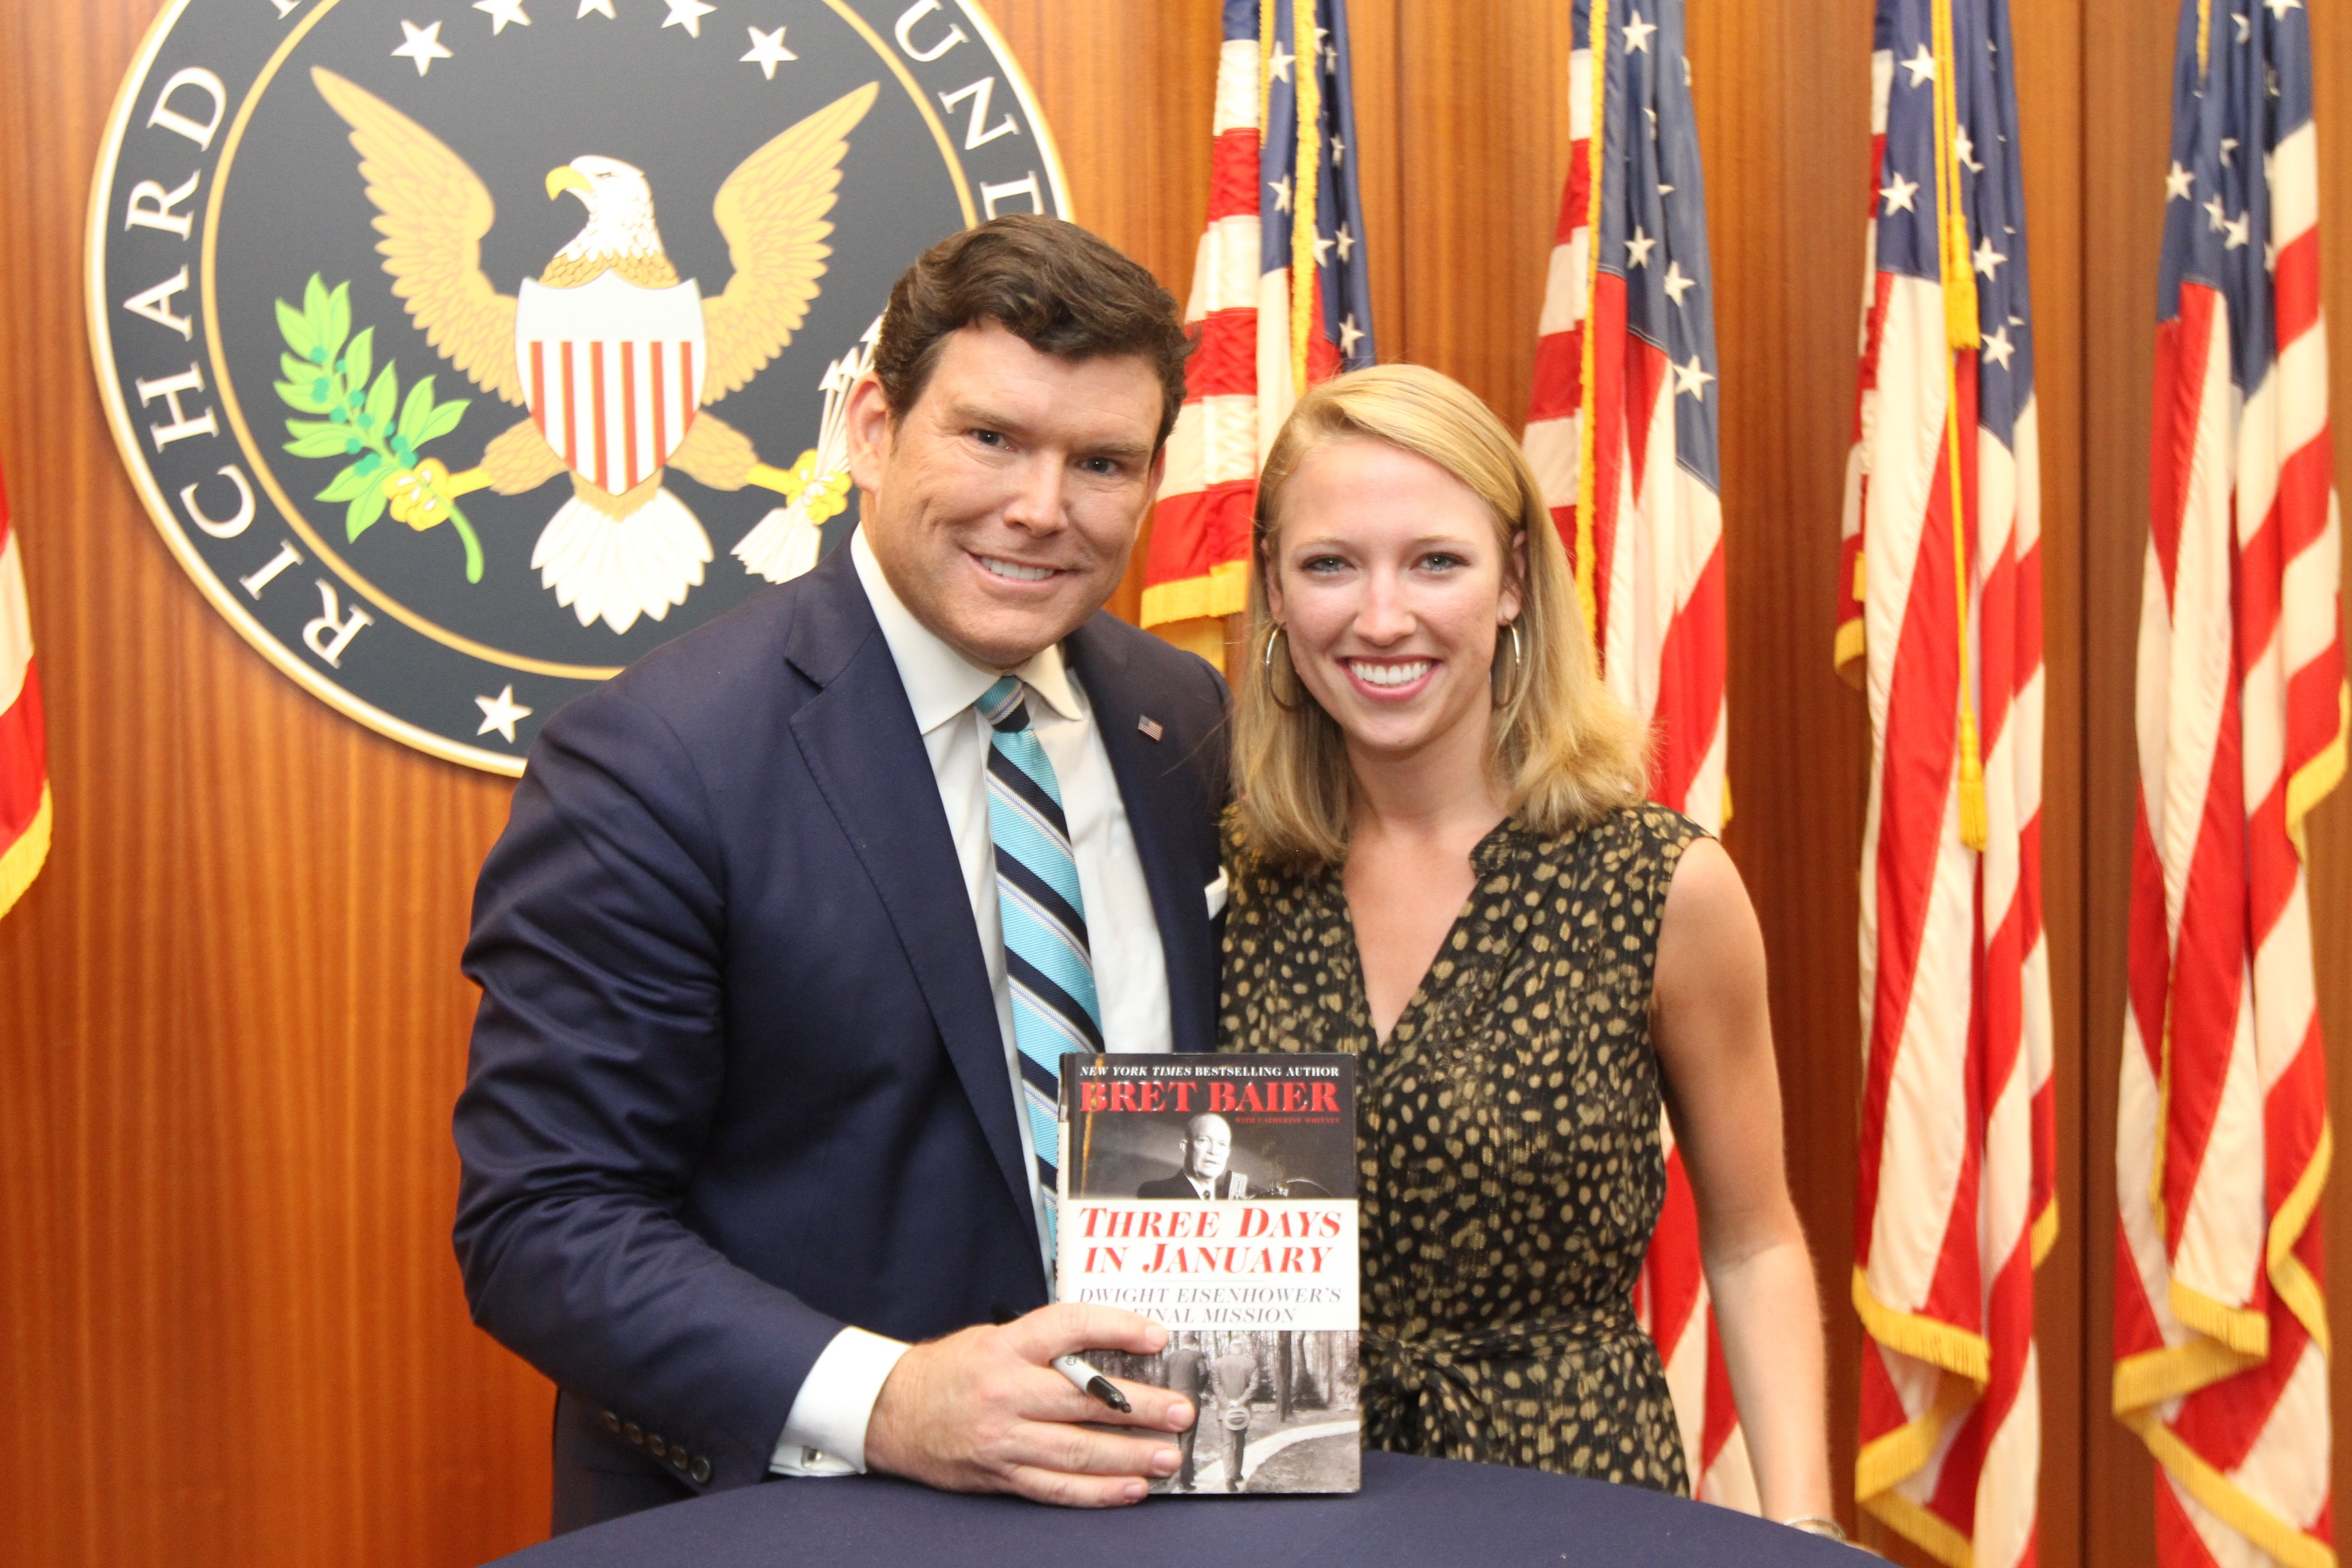 Author and News Host, Bret Baier